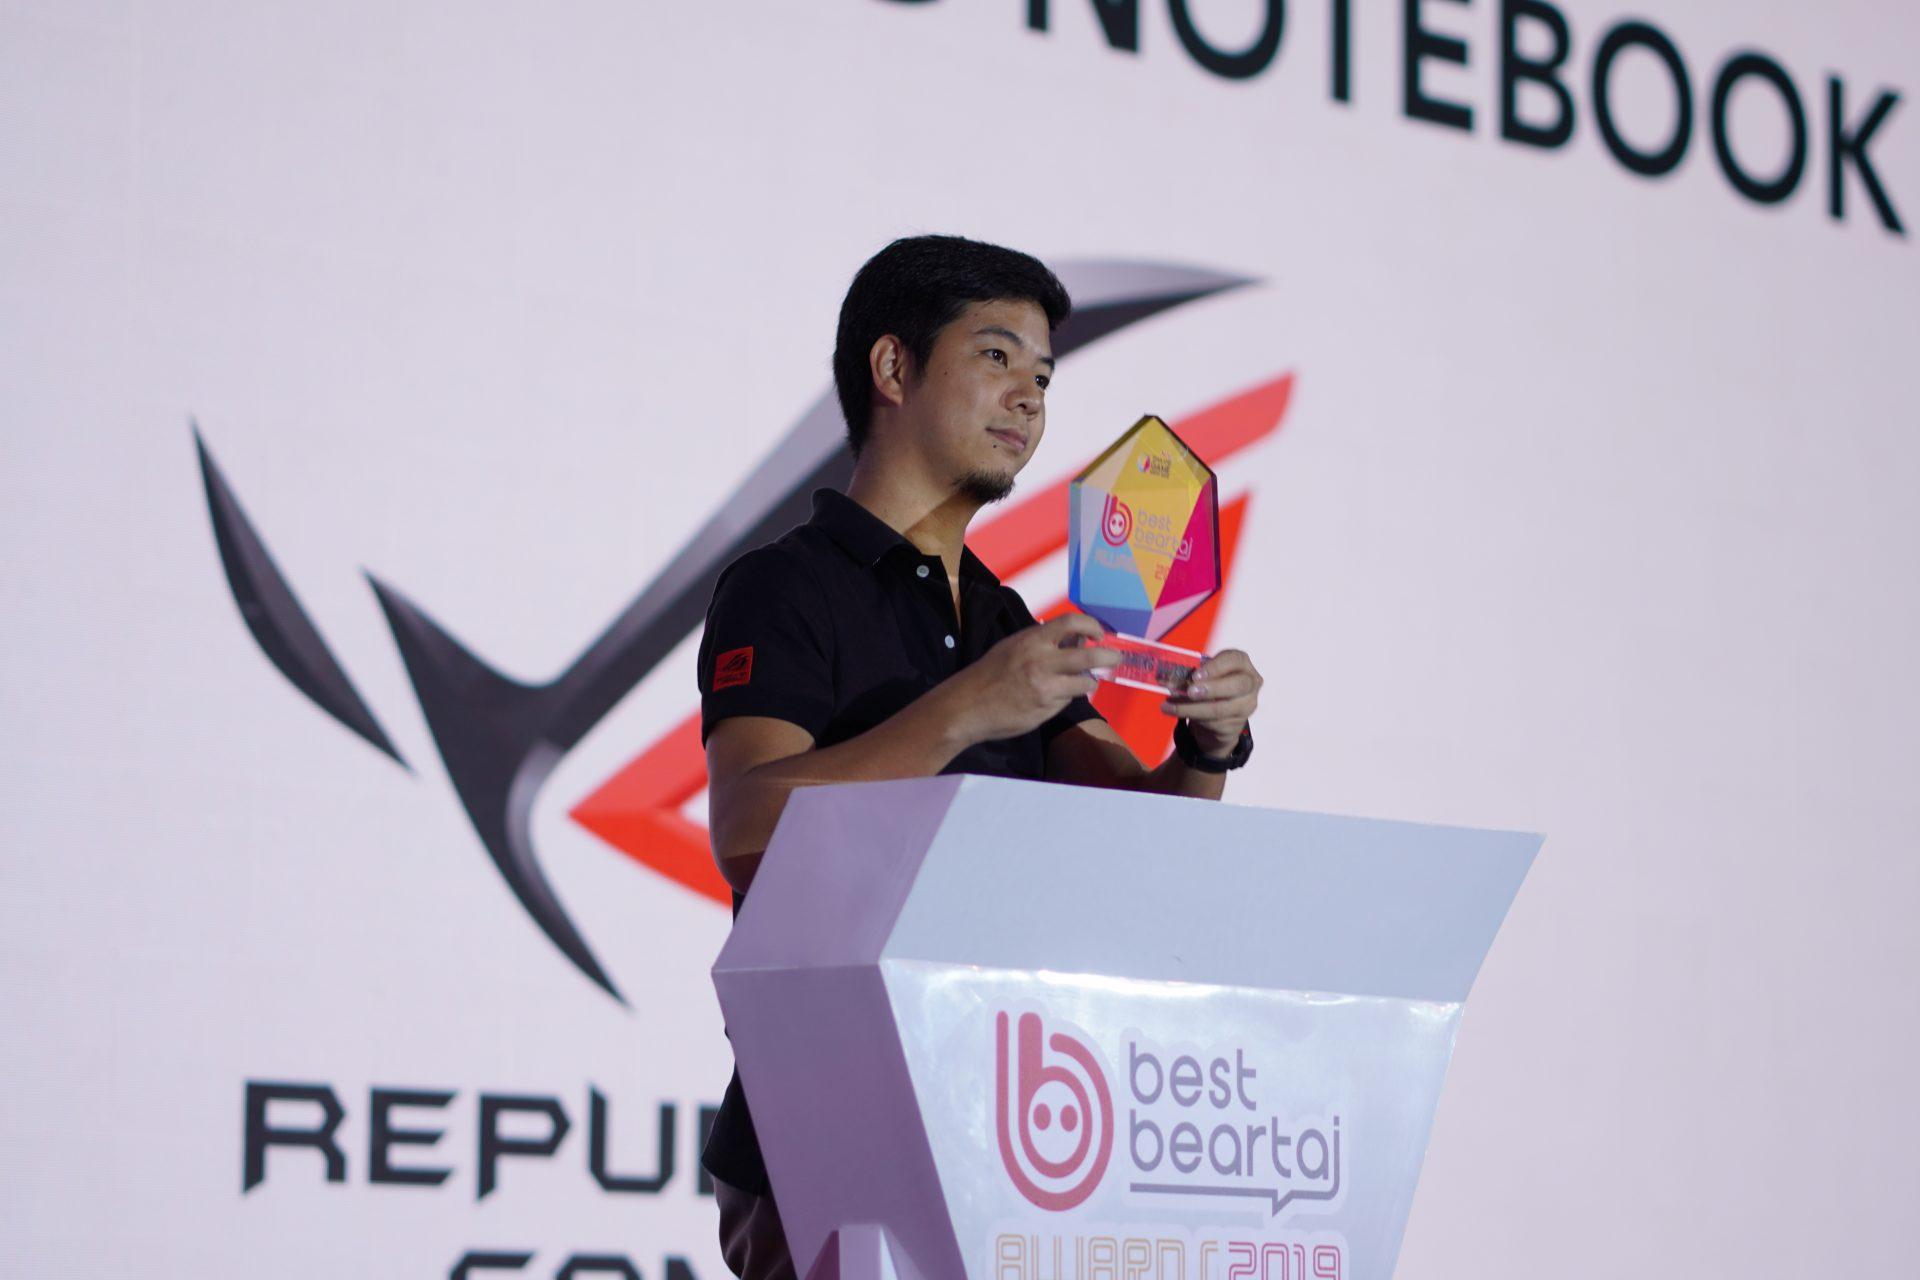 Best Beartai Awards 2019